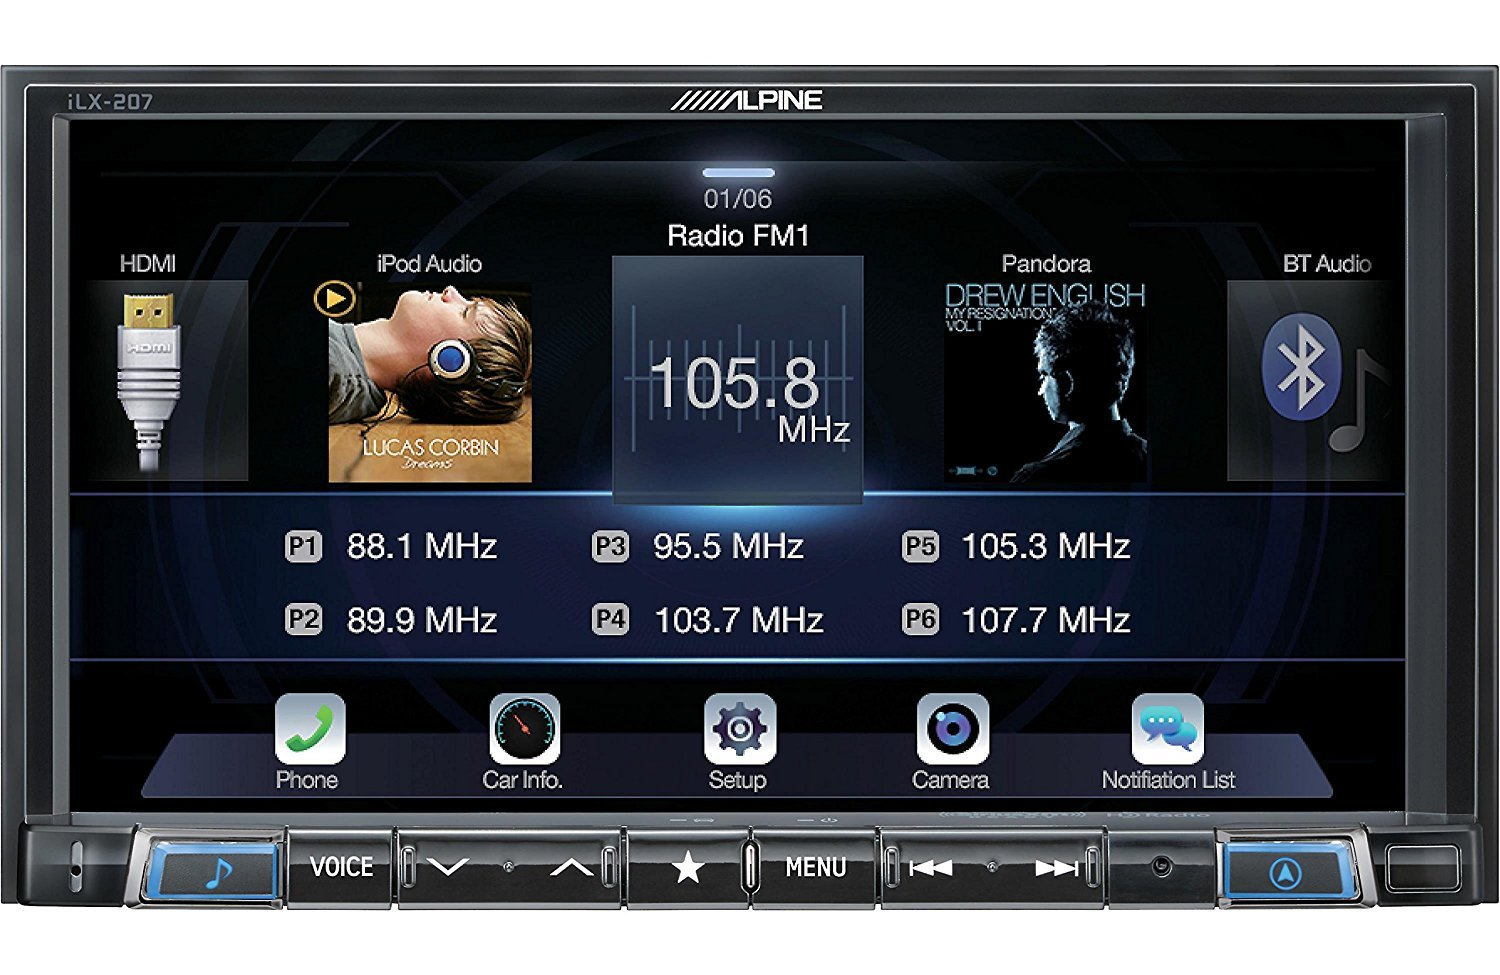 Amazon.com: Alpine iLX-207 7-Inch Mech-Less Audio/Video Receiver: Electronics